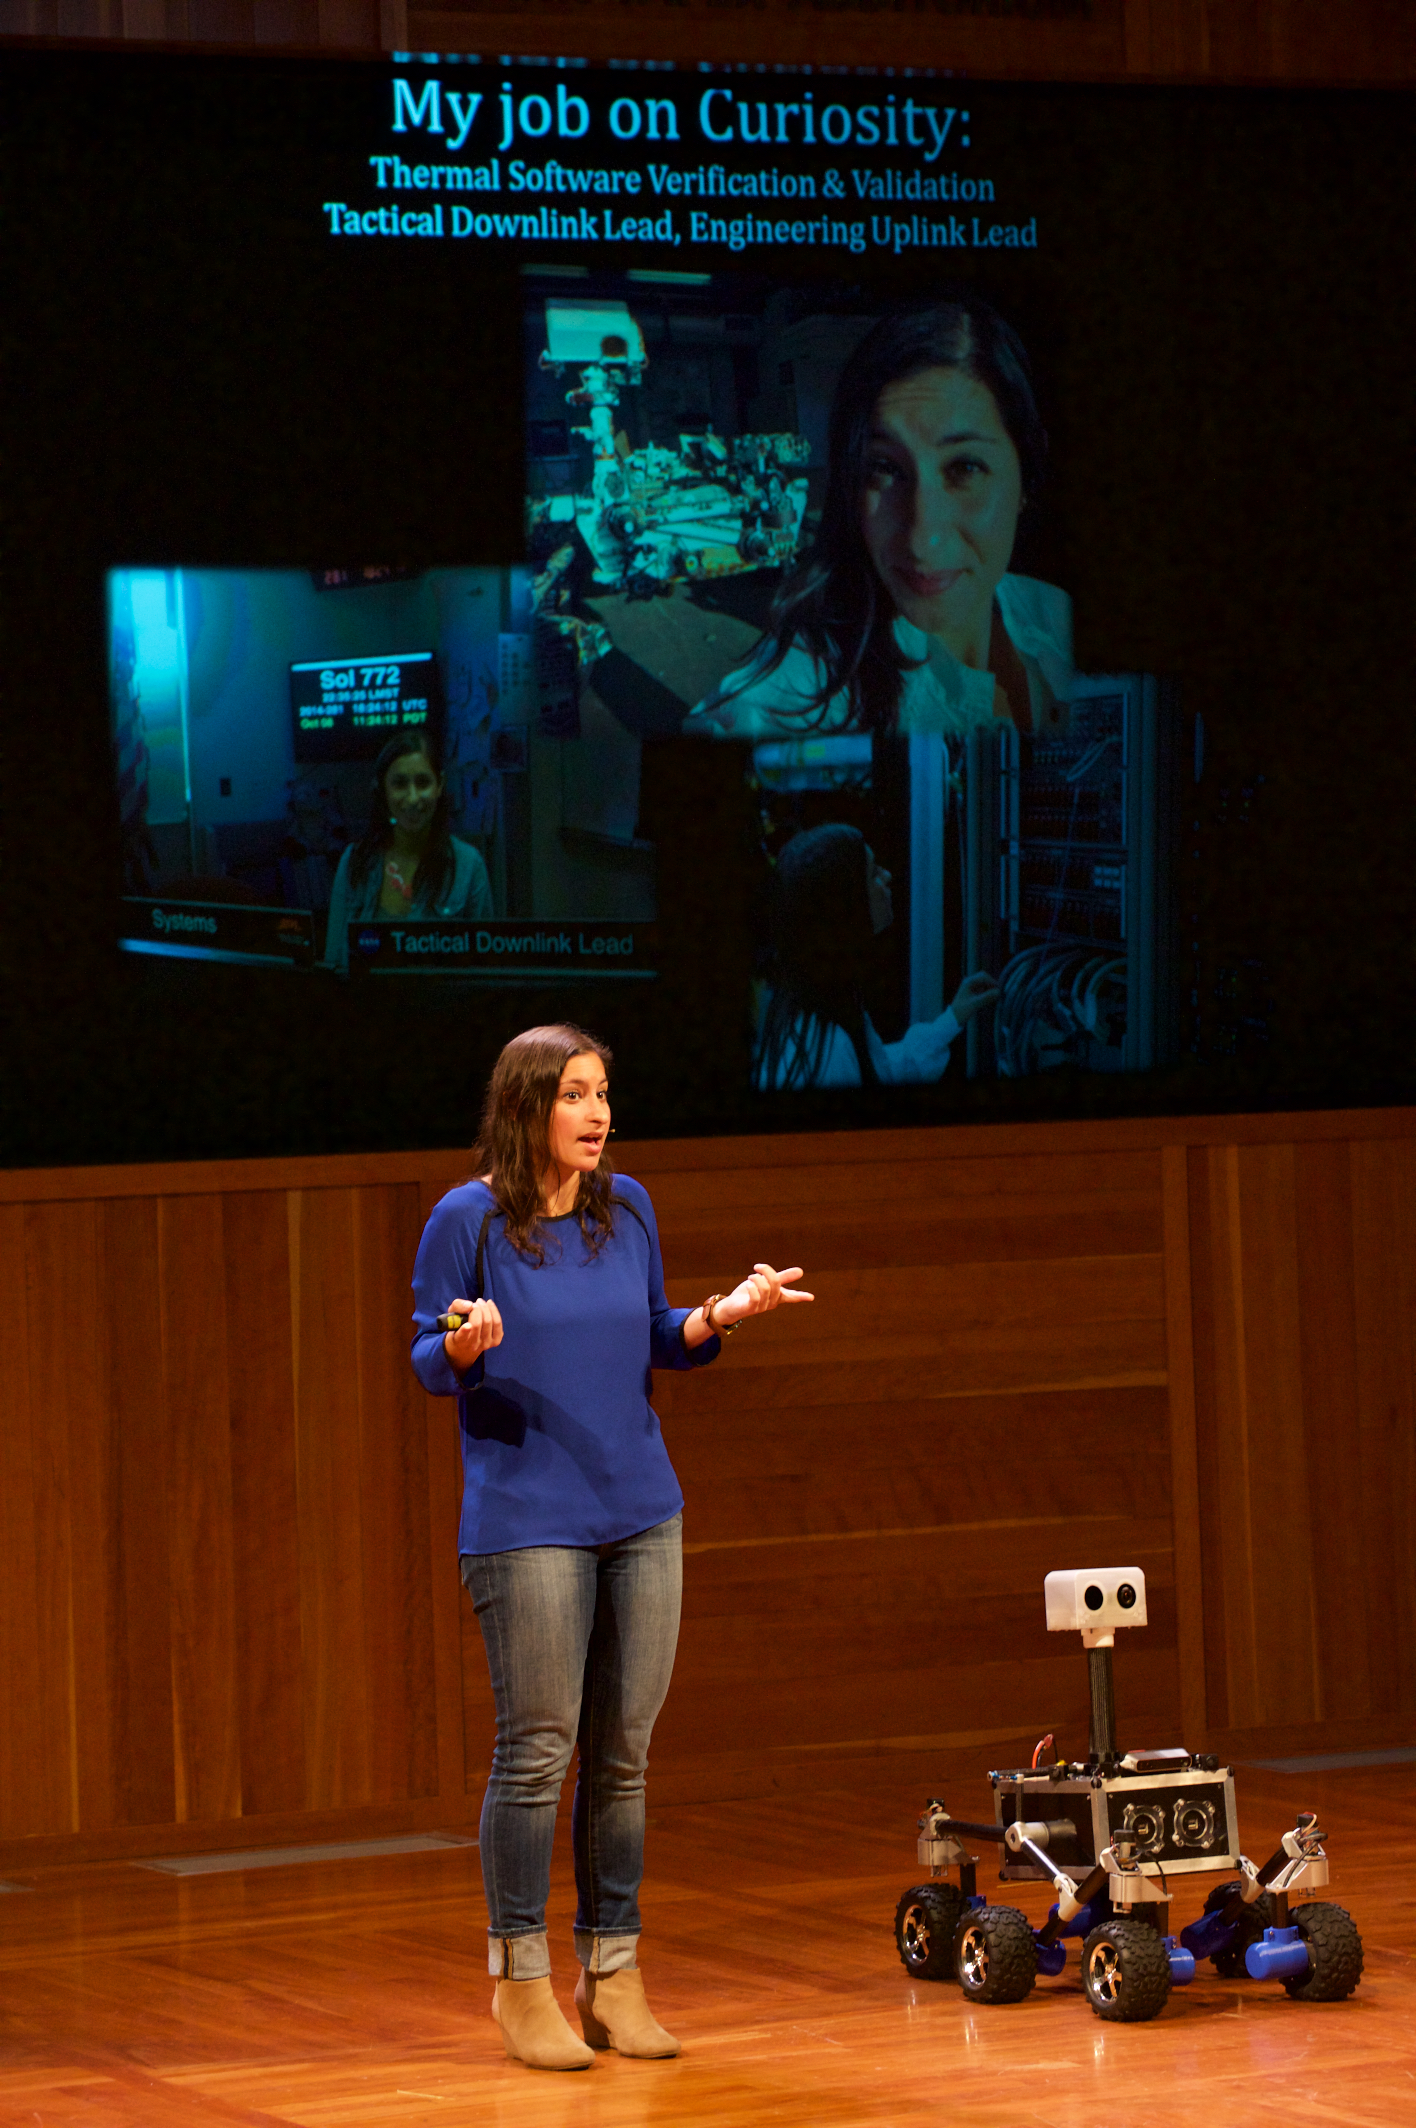 Mallory Lefland, NASA JPL Engineer, & ROV-E demo robot (Remotely Operated Vehicle for Education)